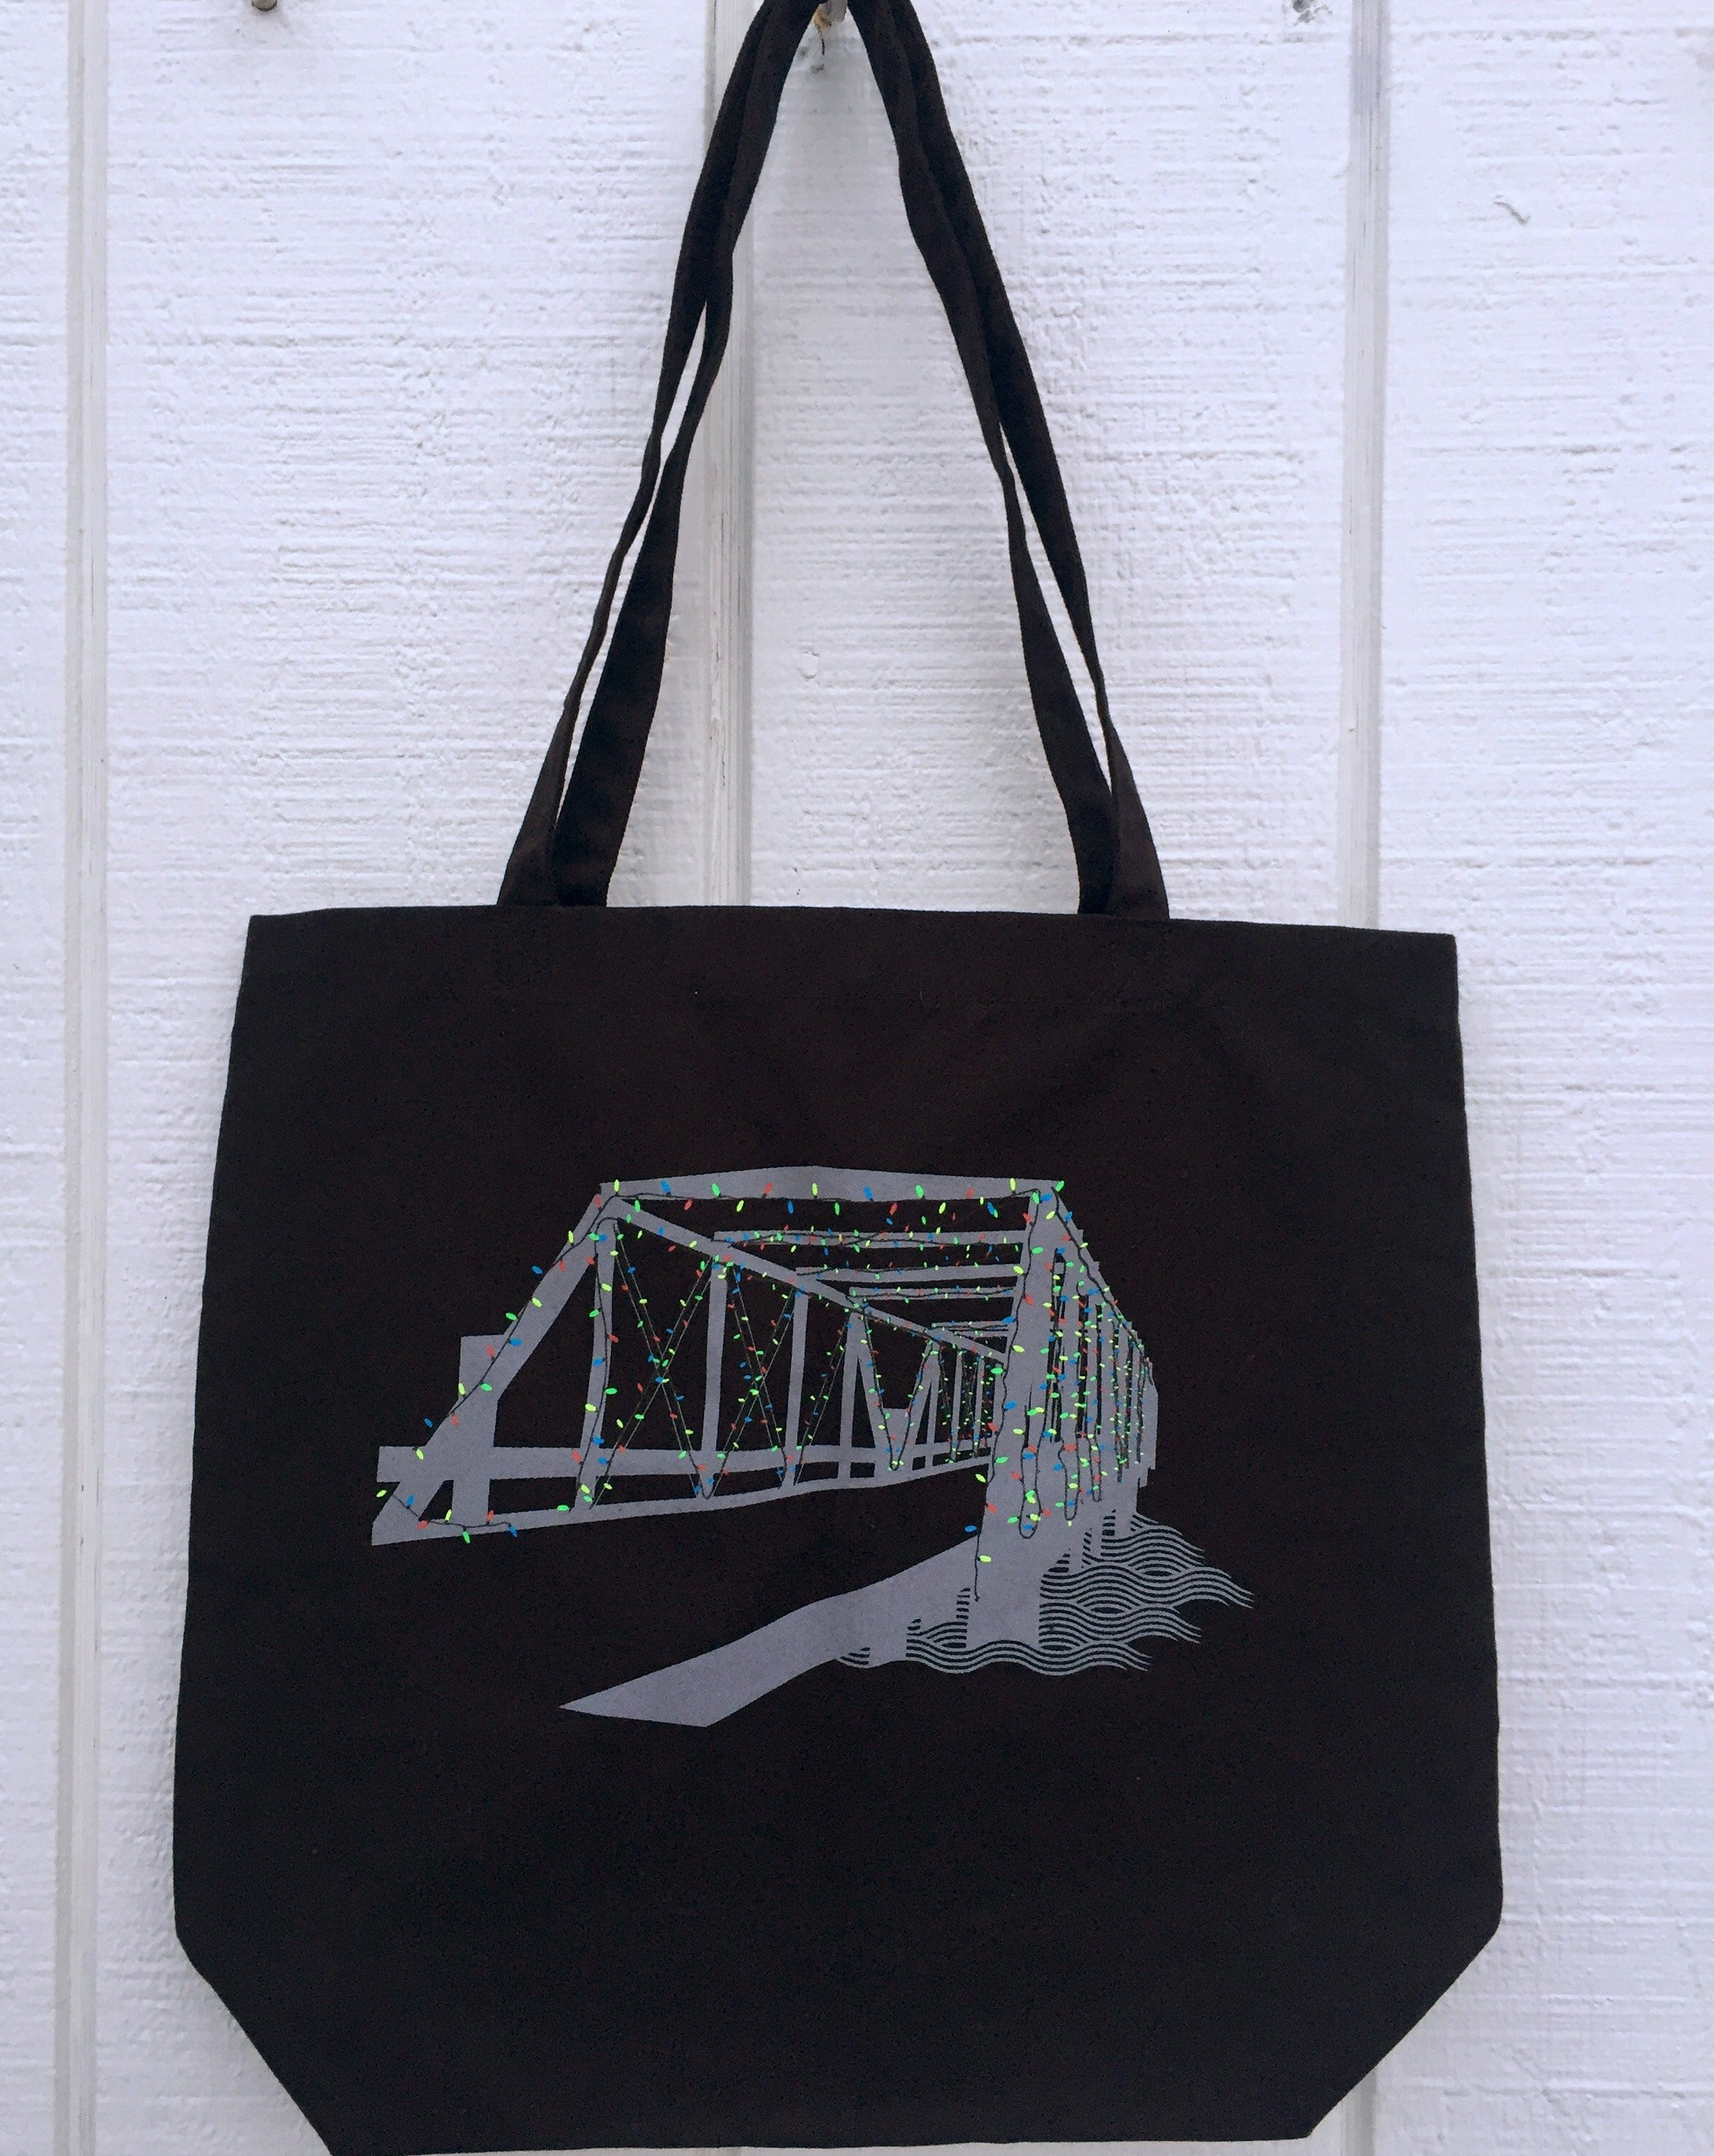 Westport Tote by Townee - Large Saugatuck Lights Tote